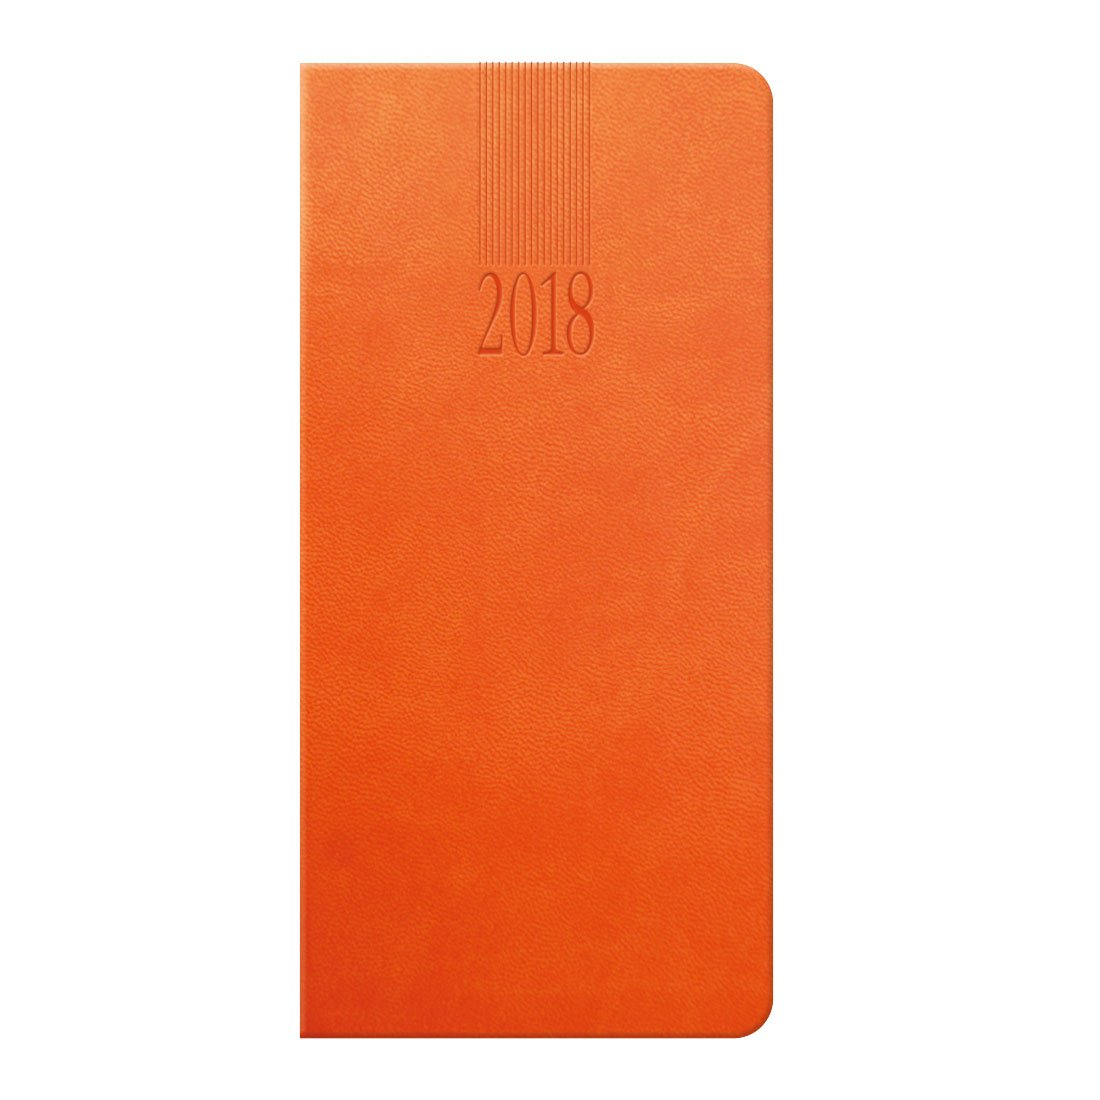 Tuscon pocket diary in orange with a padded cover, embossed with the date anfd your logo. Ribbon marker, UK and World maps.